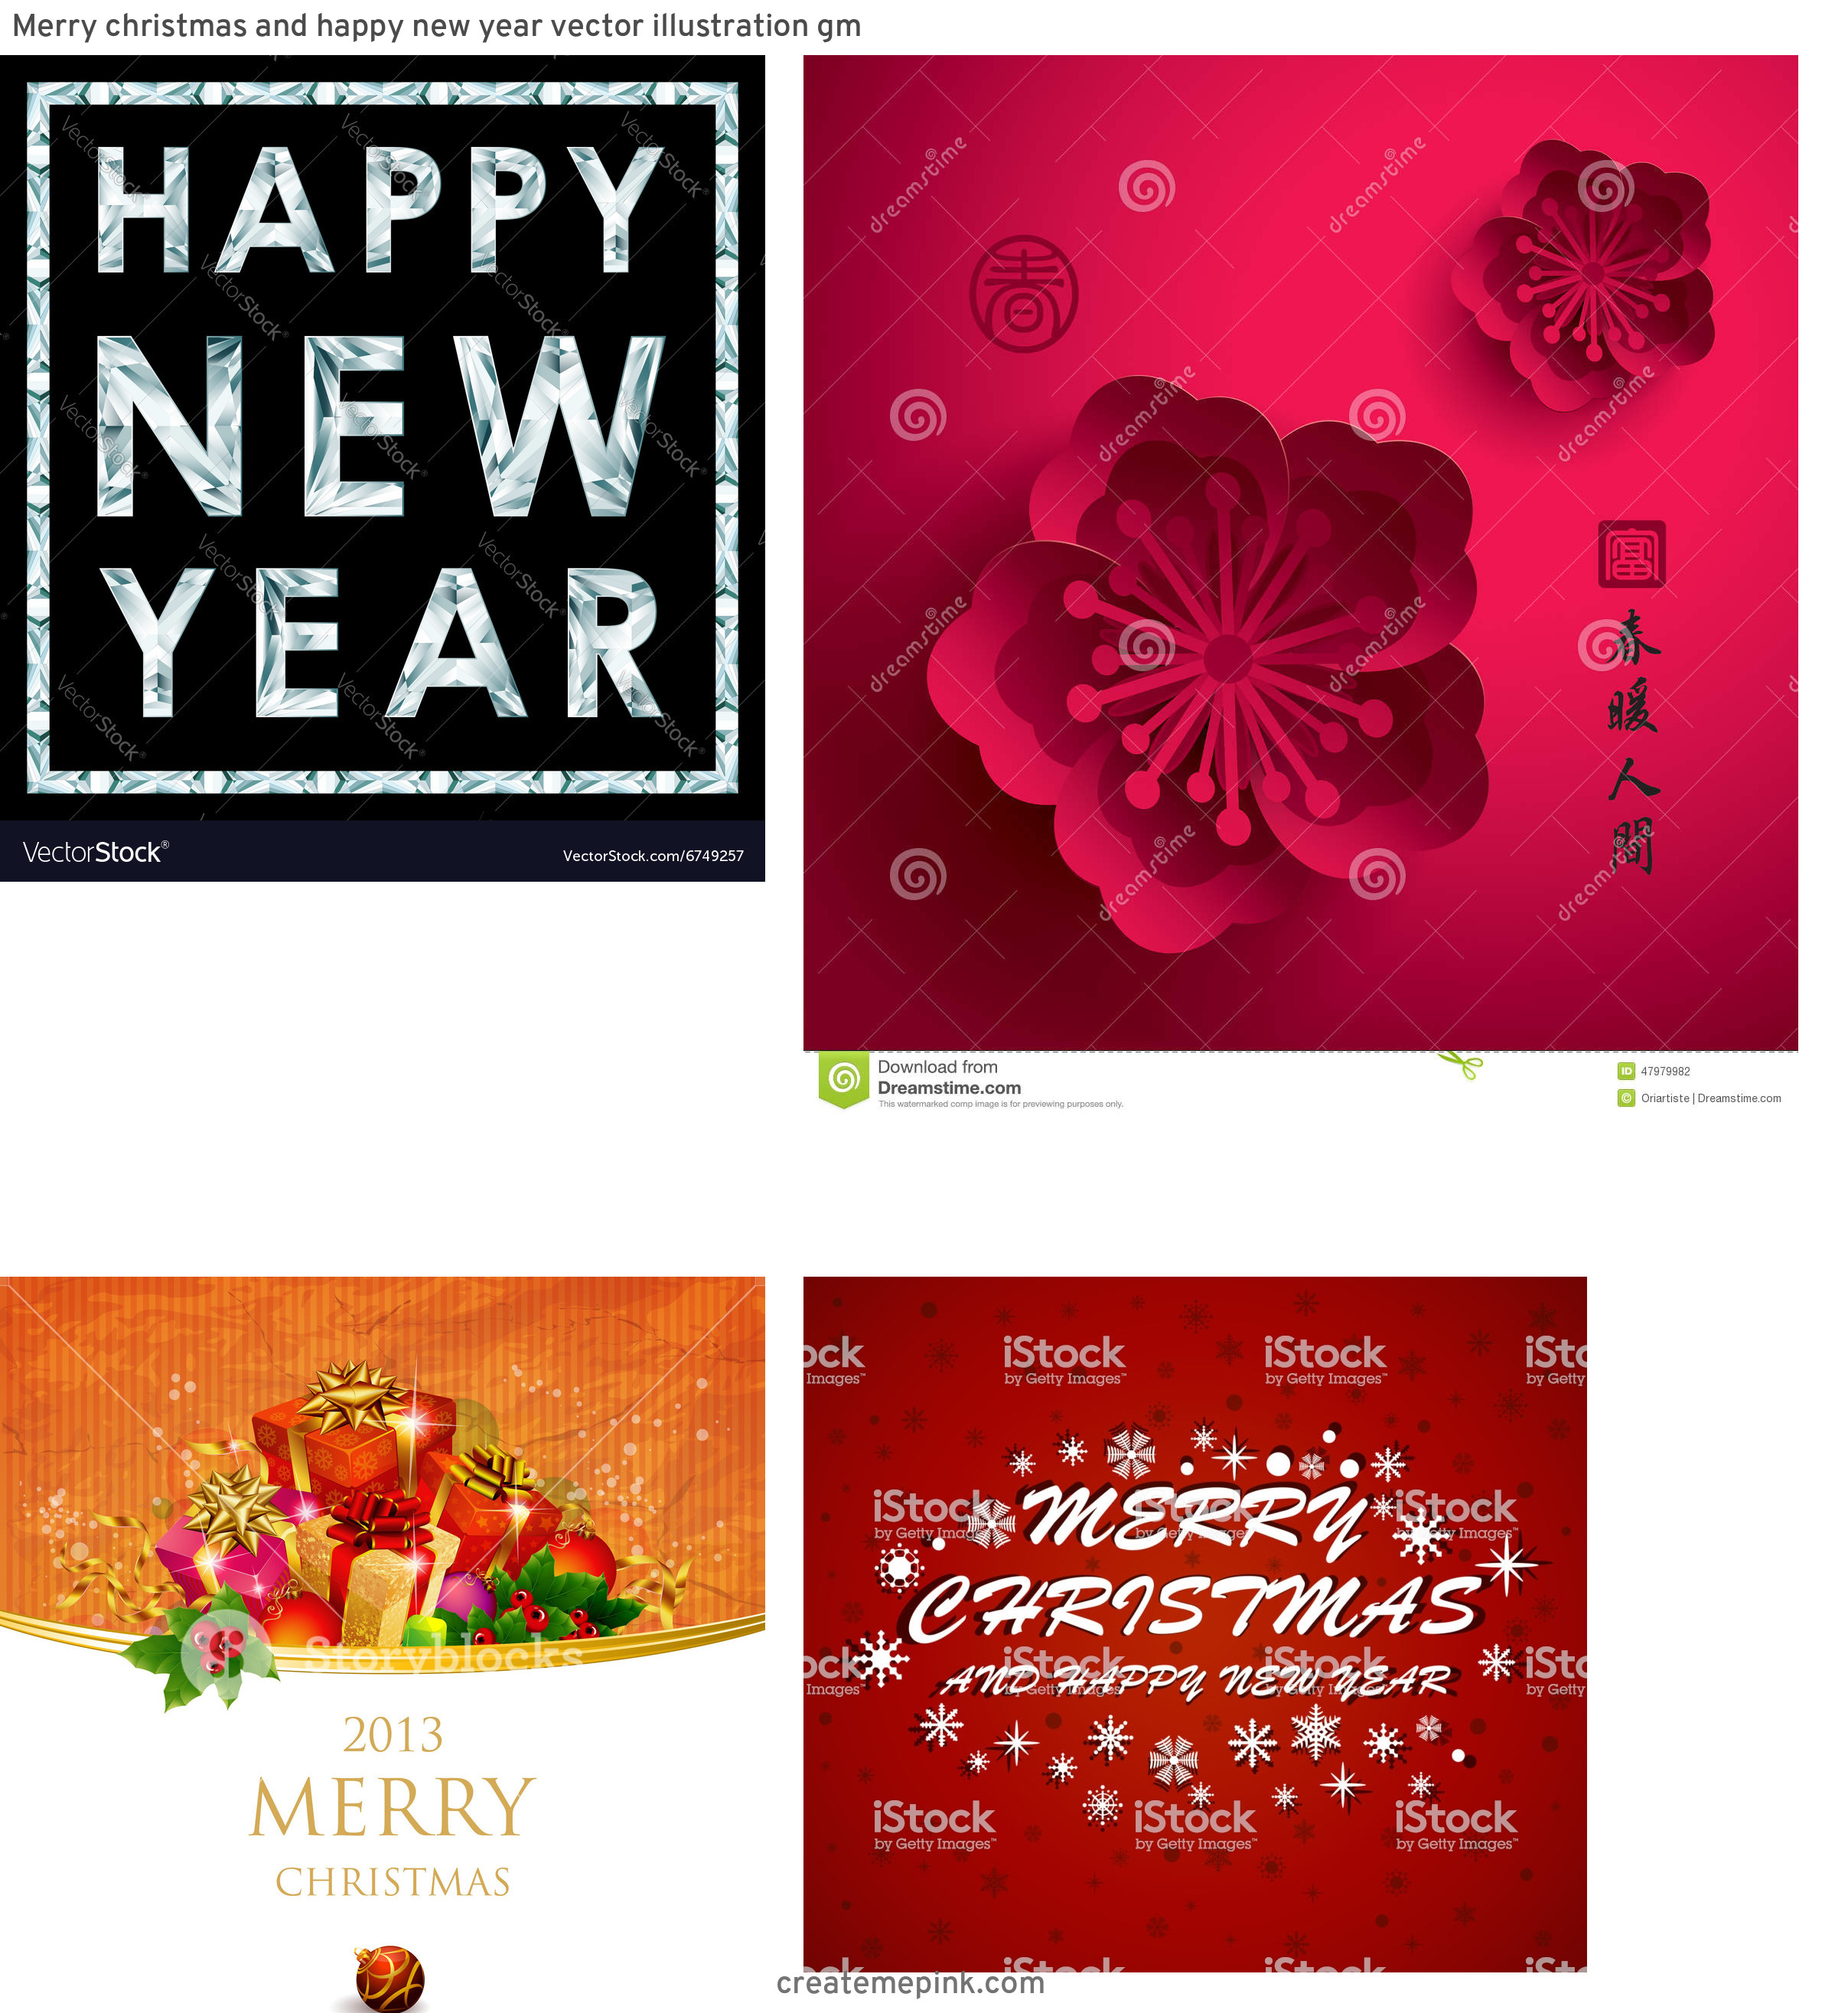 Free New Year Vector: Merry Christmas And Happy New Year Vector Illustration Gm